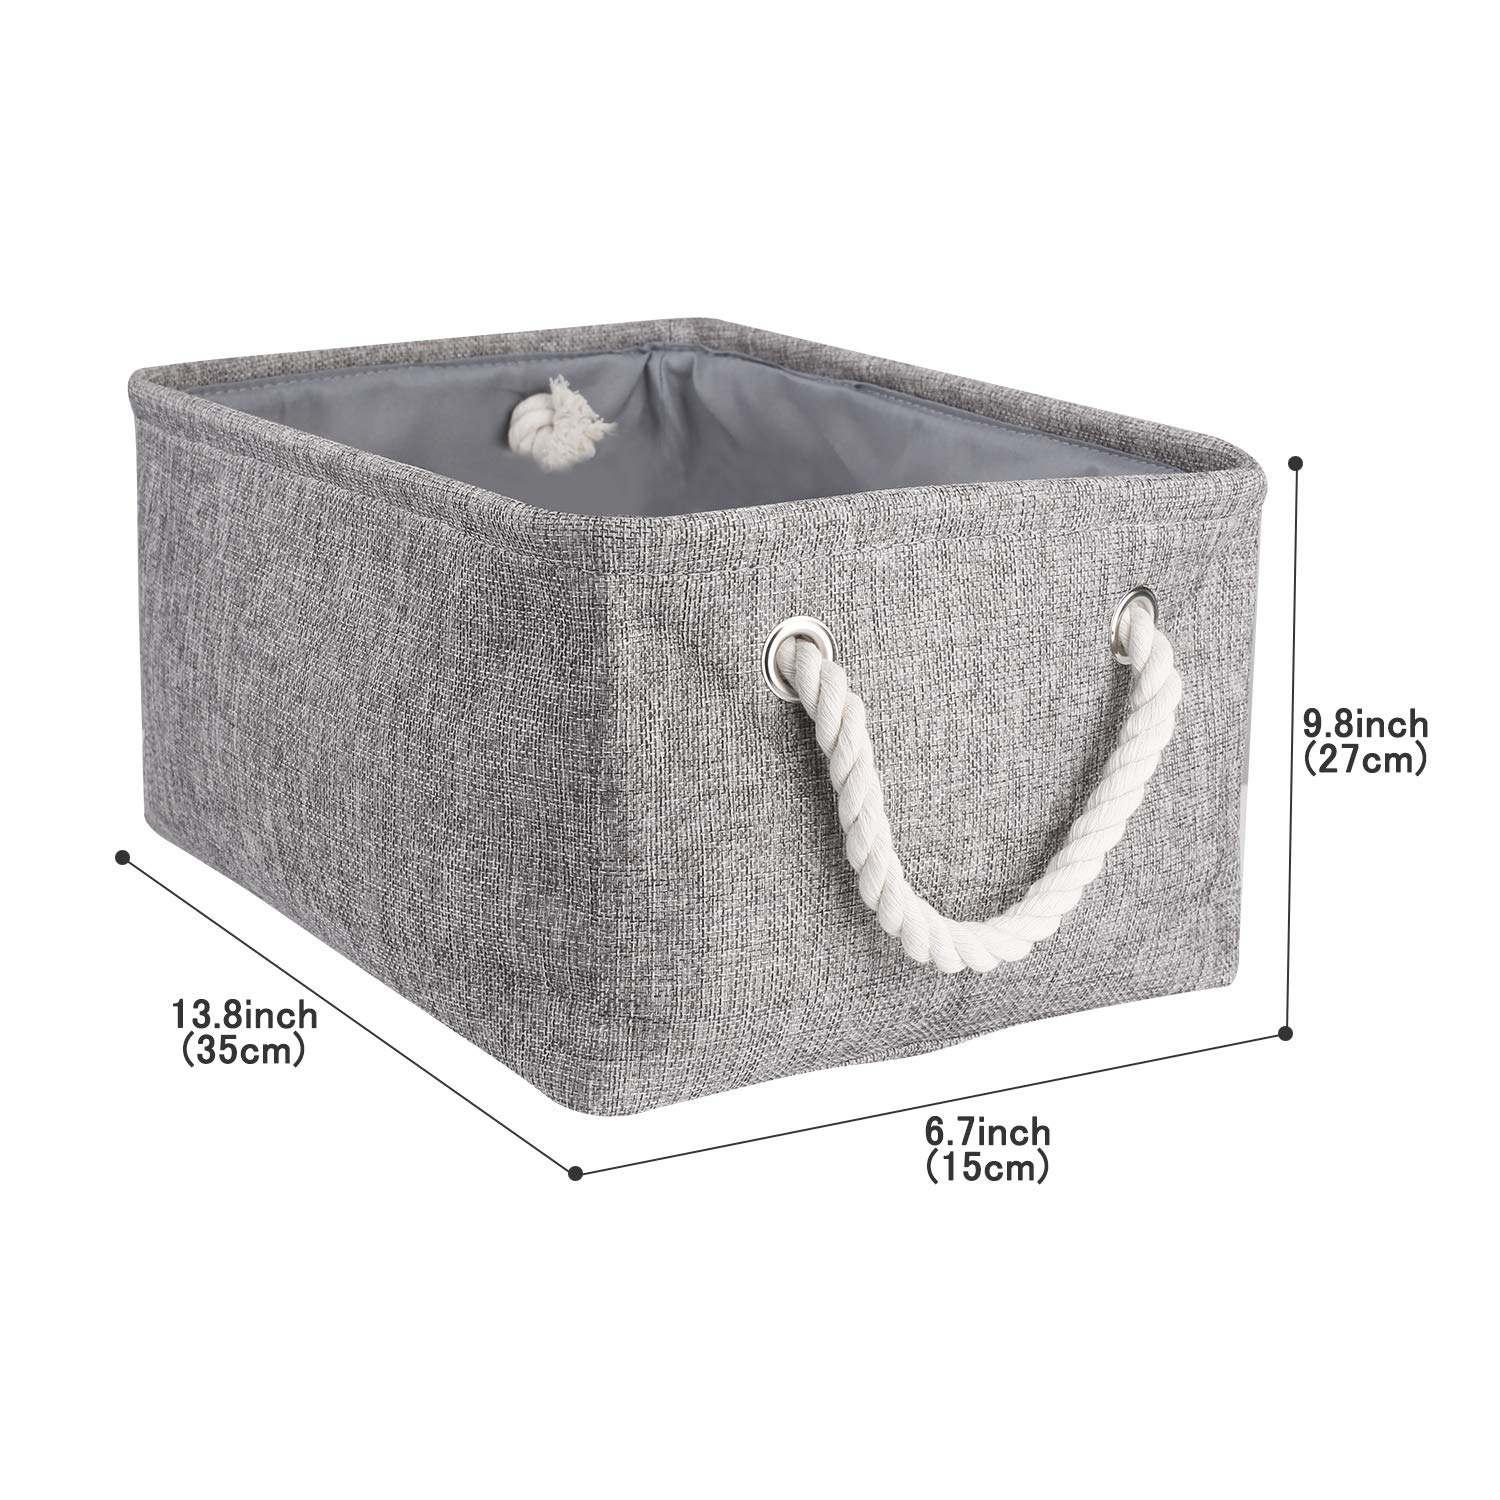 Toys Collapsible Organizer Bin with Handle for Towels Grey, Small COOMHOME Fabric Storage Baskets for Shelves Clothes Nursery Grey Kids Room